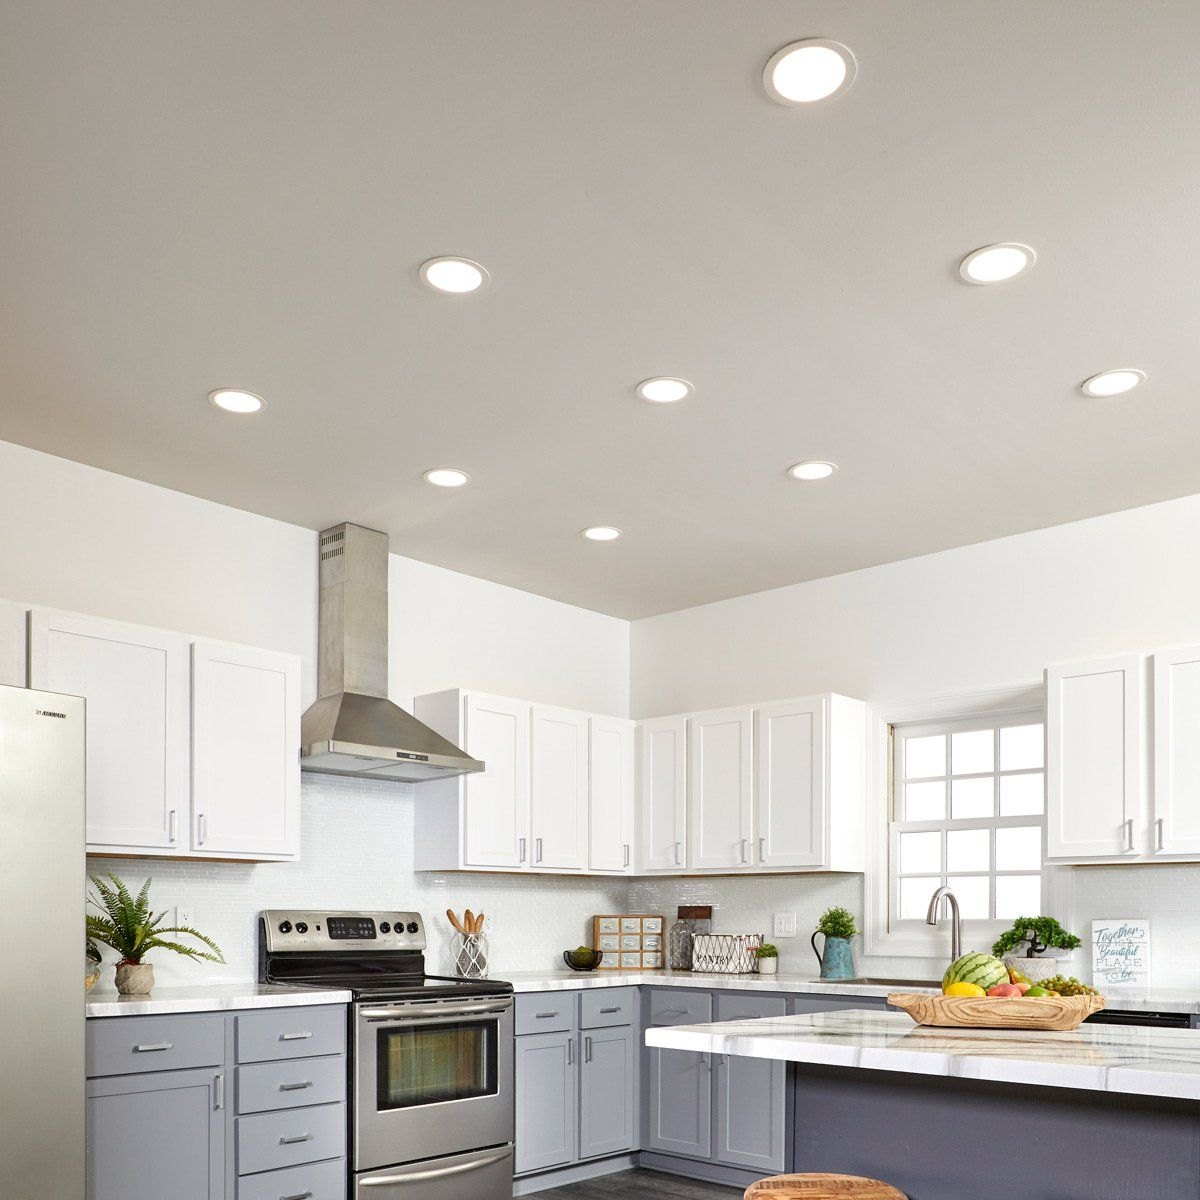 How To Install Low Profile Led Lights In Your Kitchen Kitchen Ceiling Lights Led Kitchen Ceiling Lights Install Ceiling Light